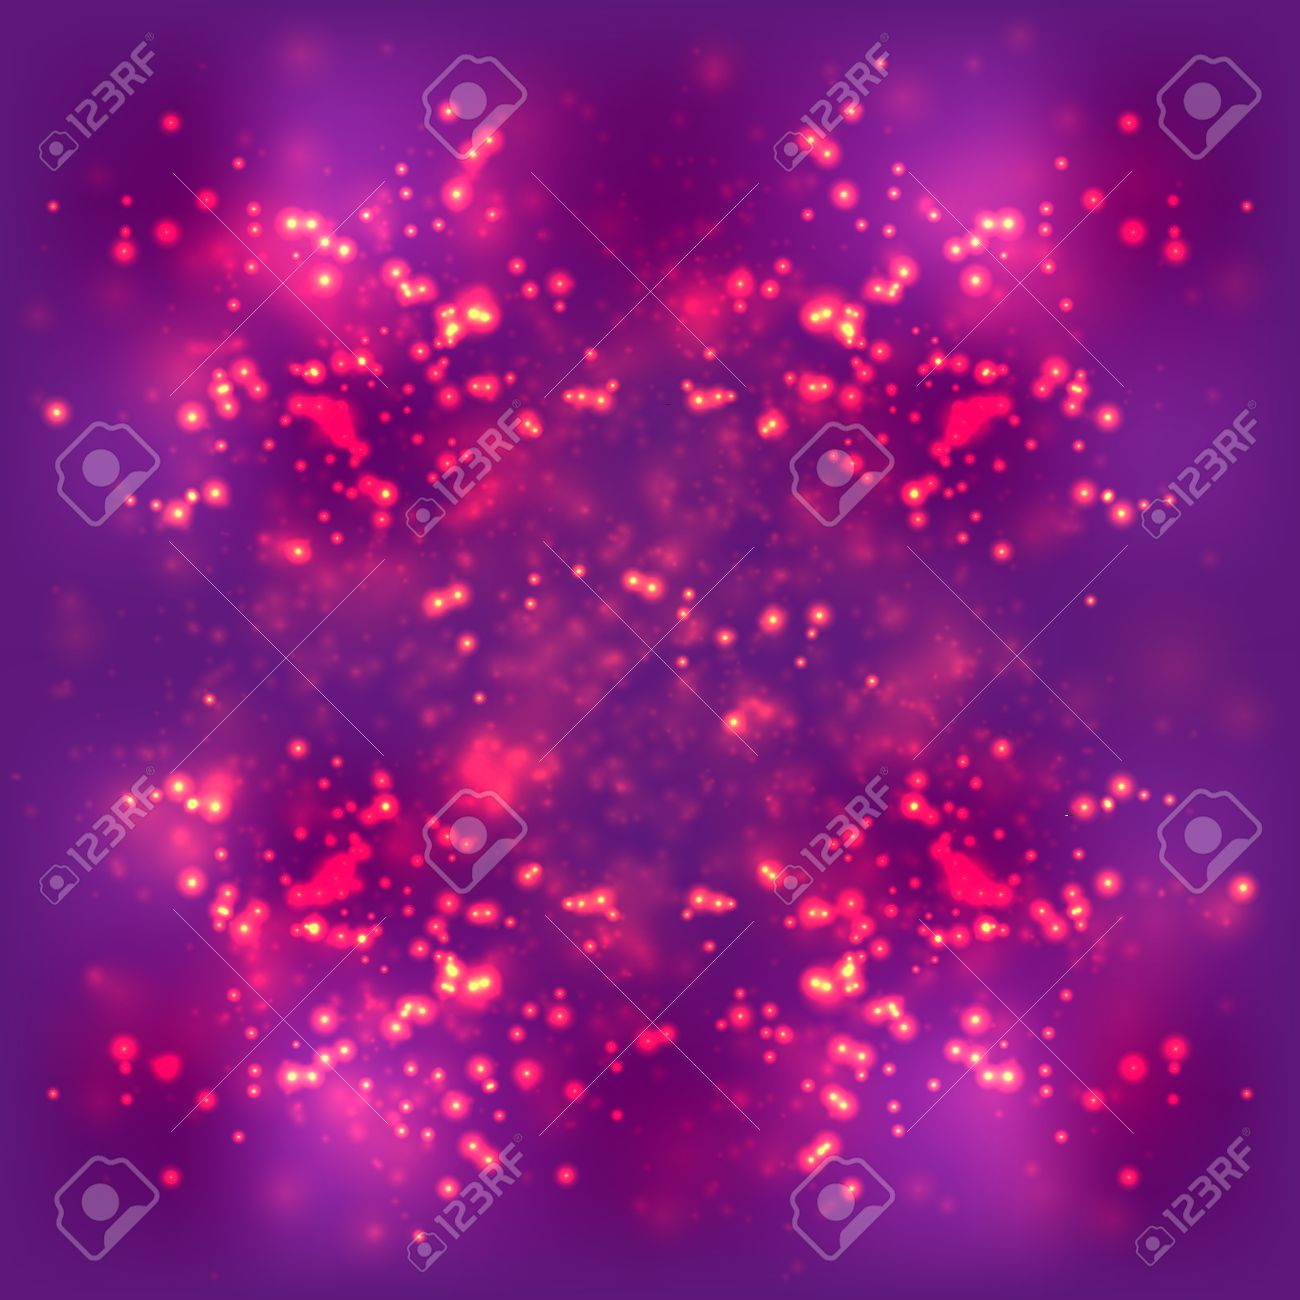 Abstract Light Background Blurred Bright Magenta Purple Space